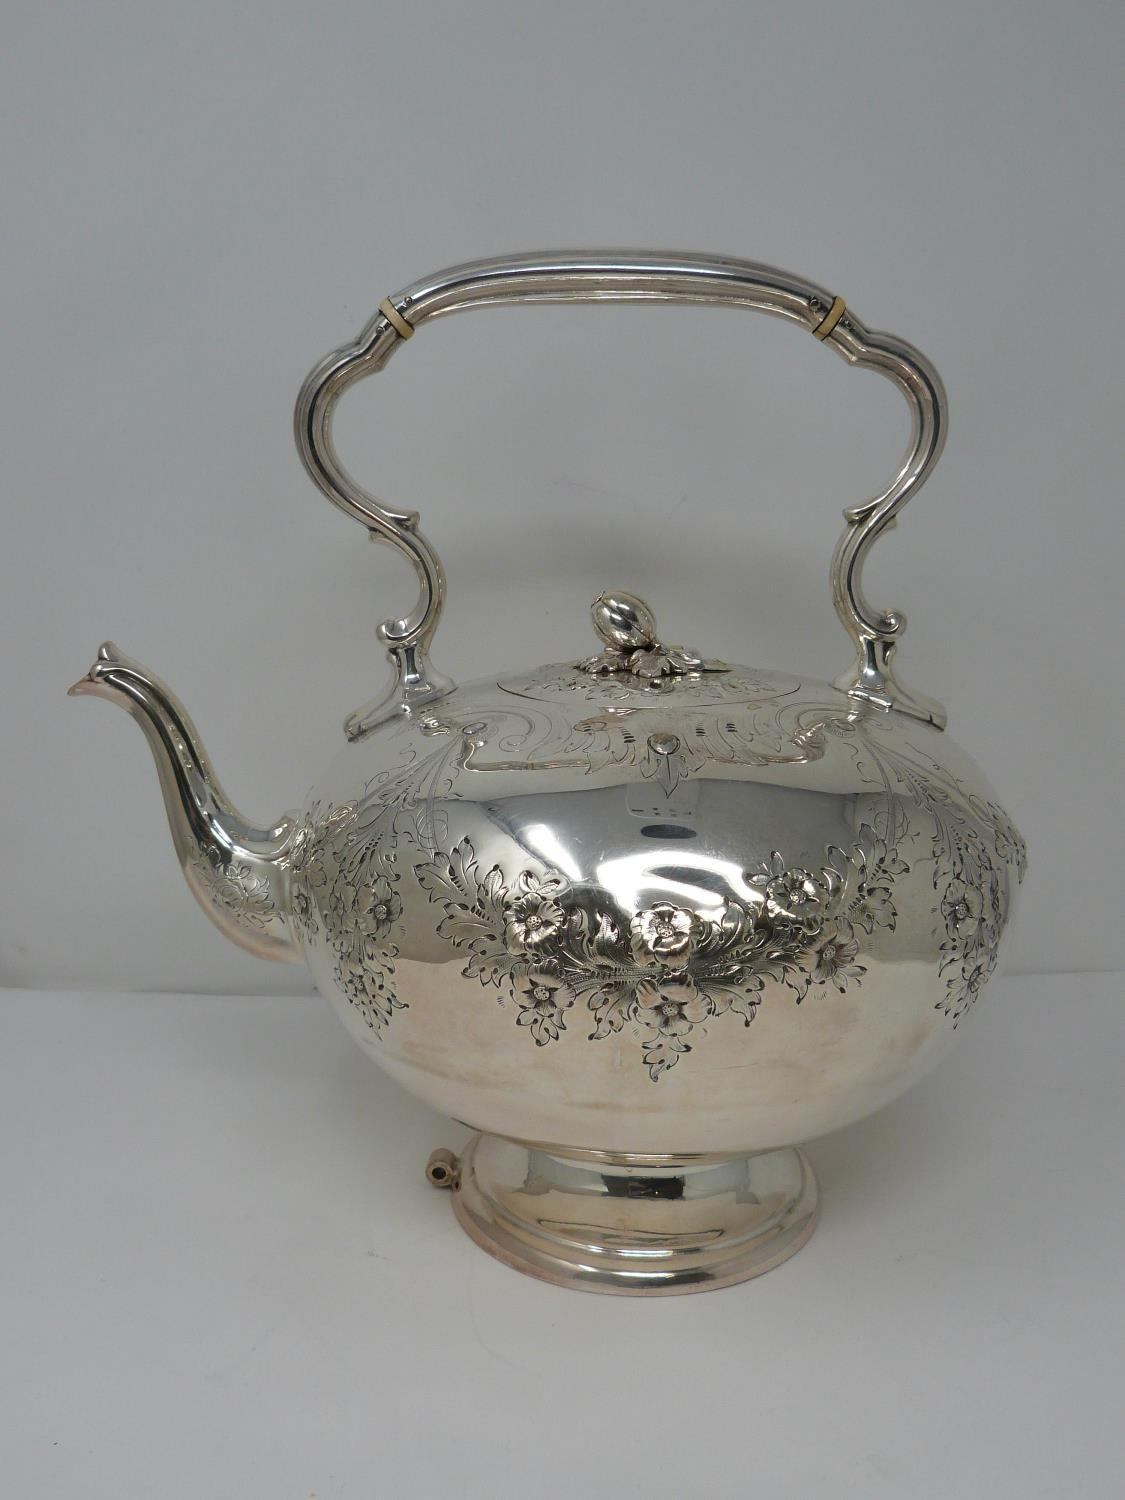 An antique white metal and ivory spirit kettle and stand. The kettle has a flower bud finial and - Image 15 of 17